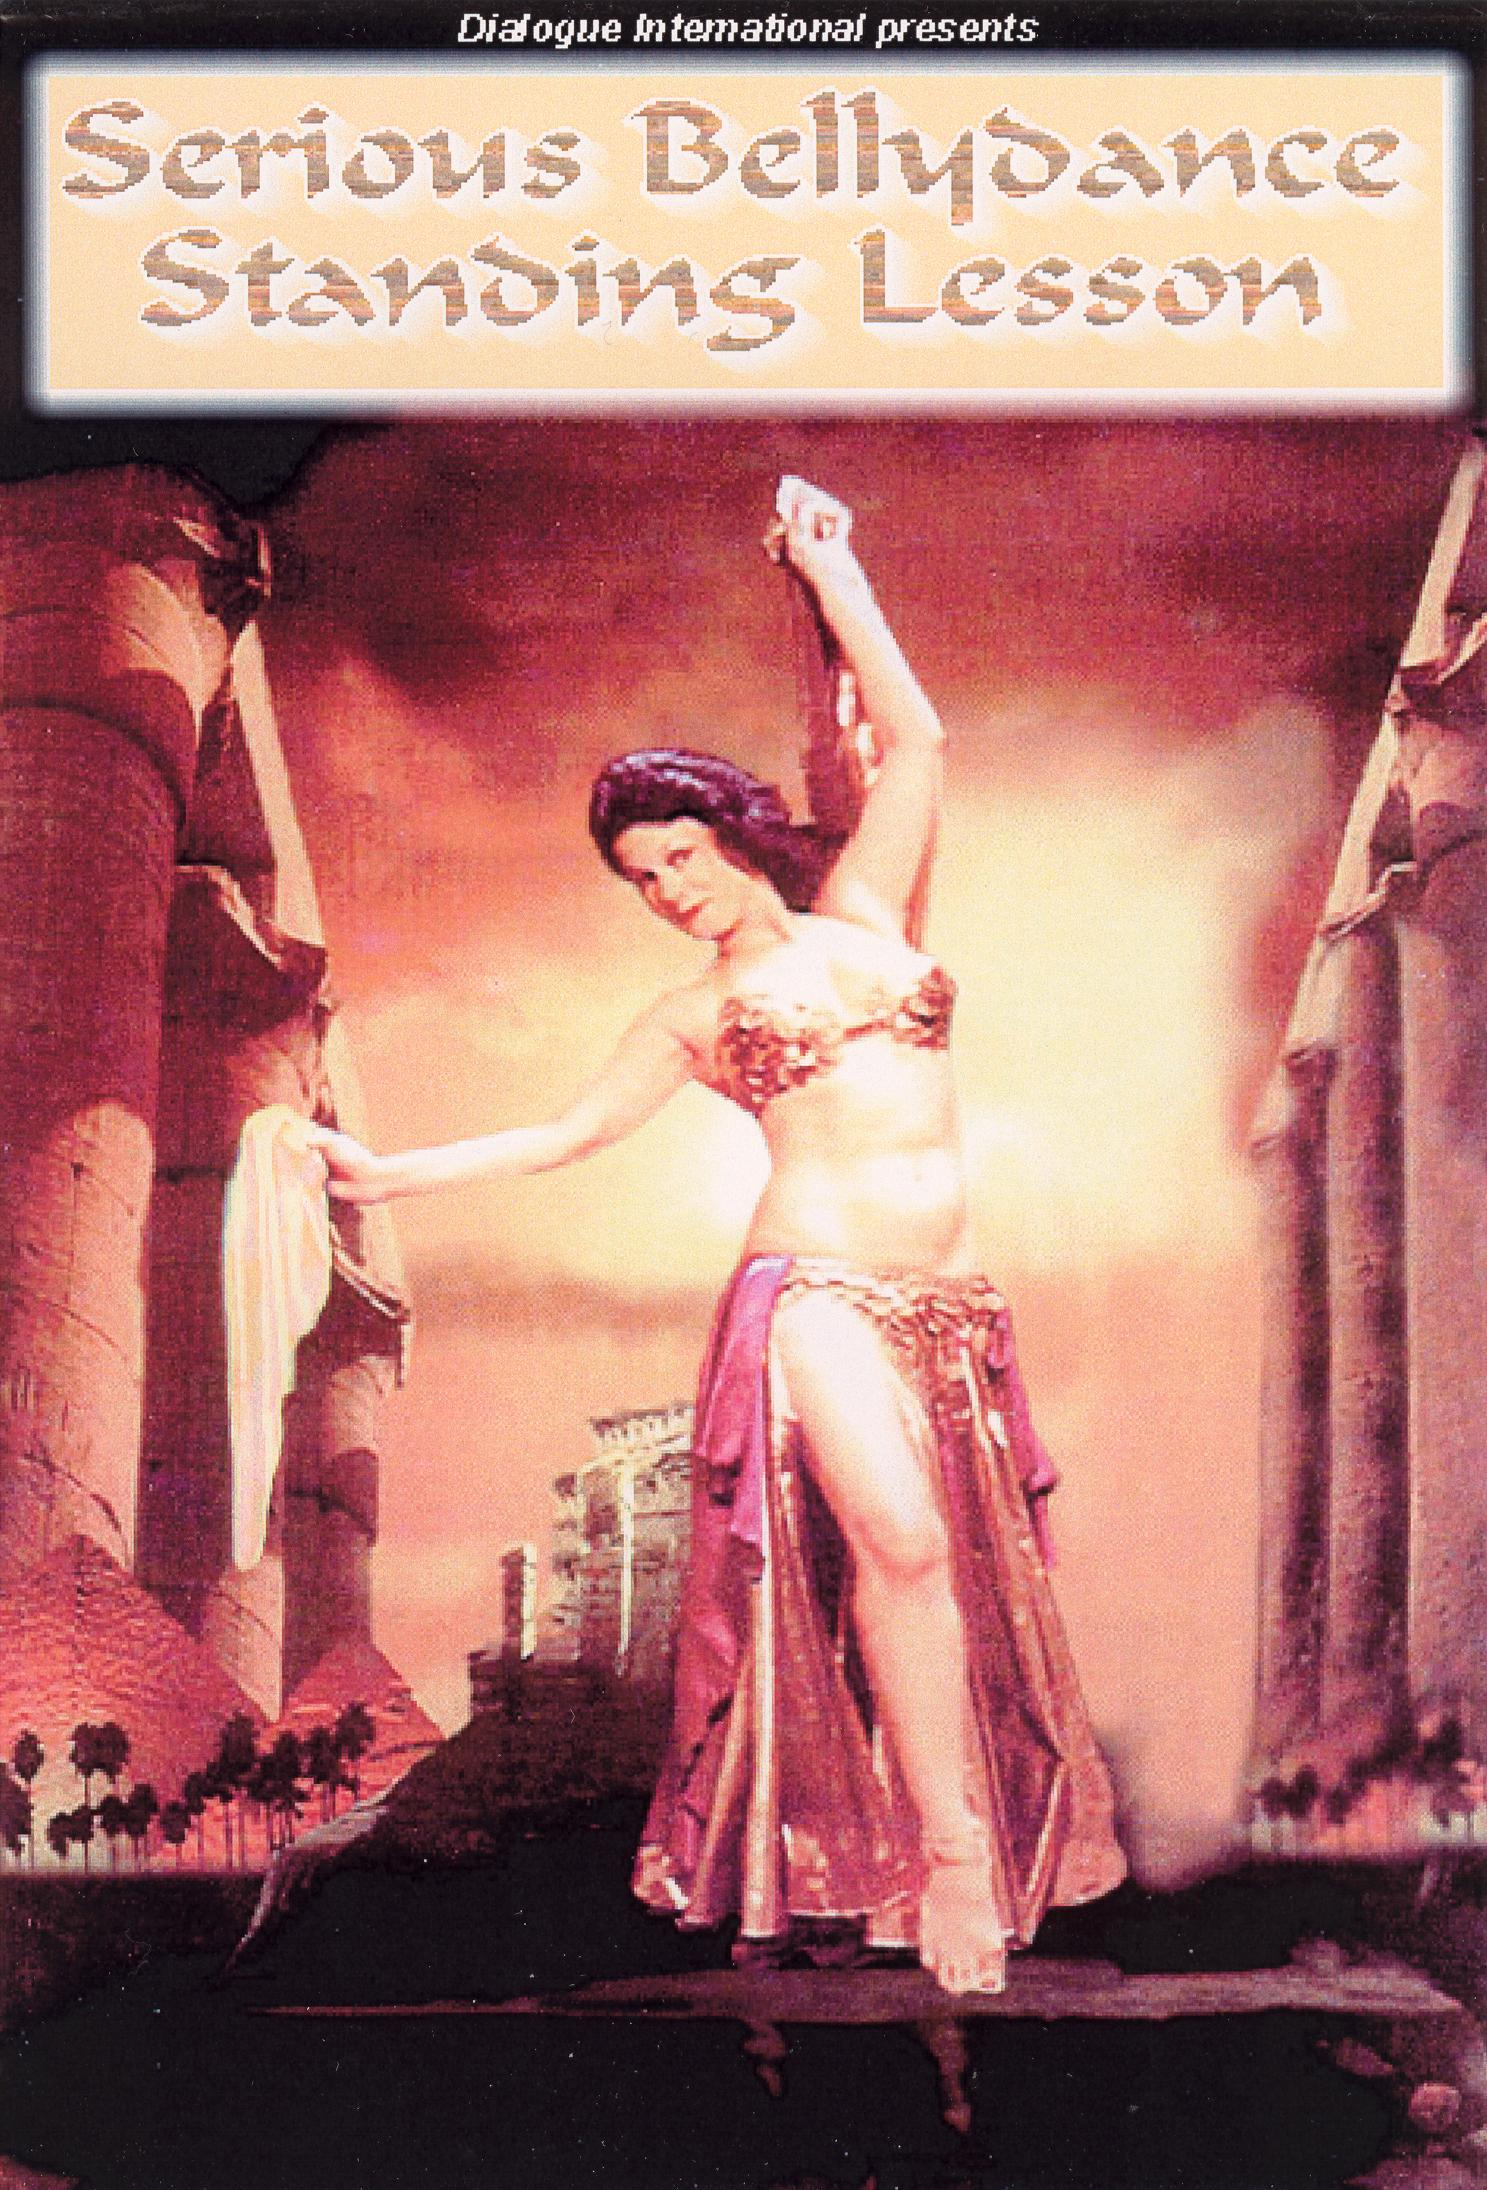 Serious Bellydance: Standing Lesson